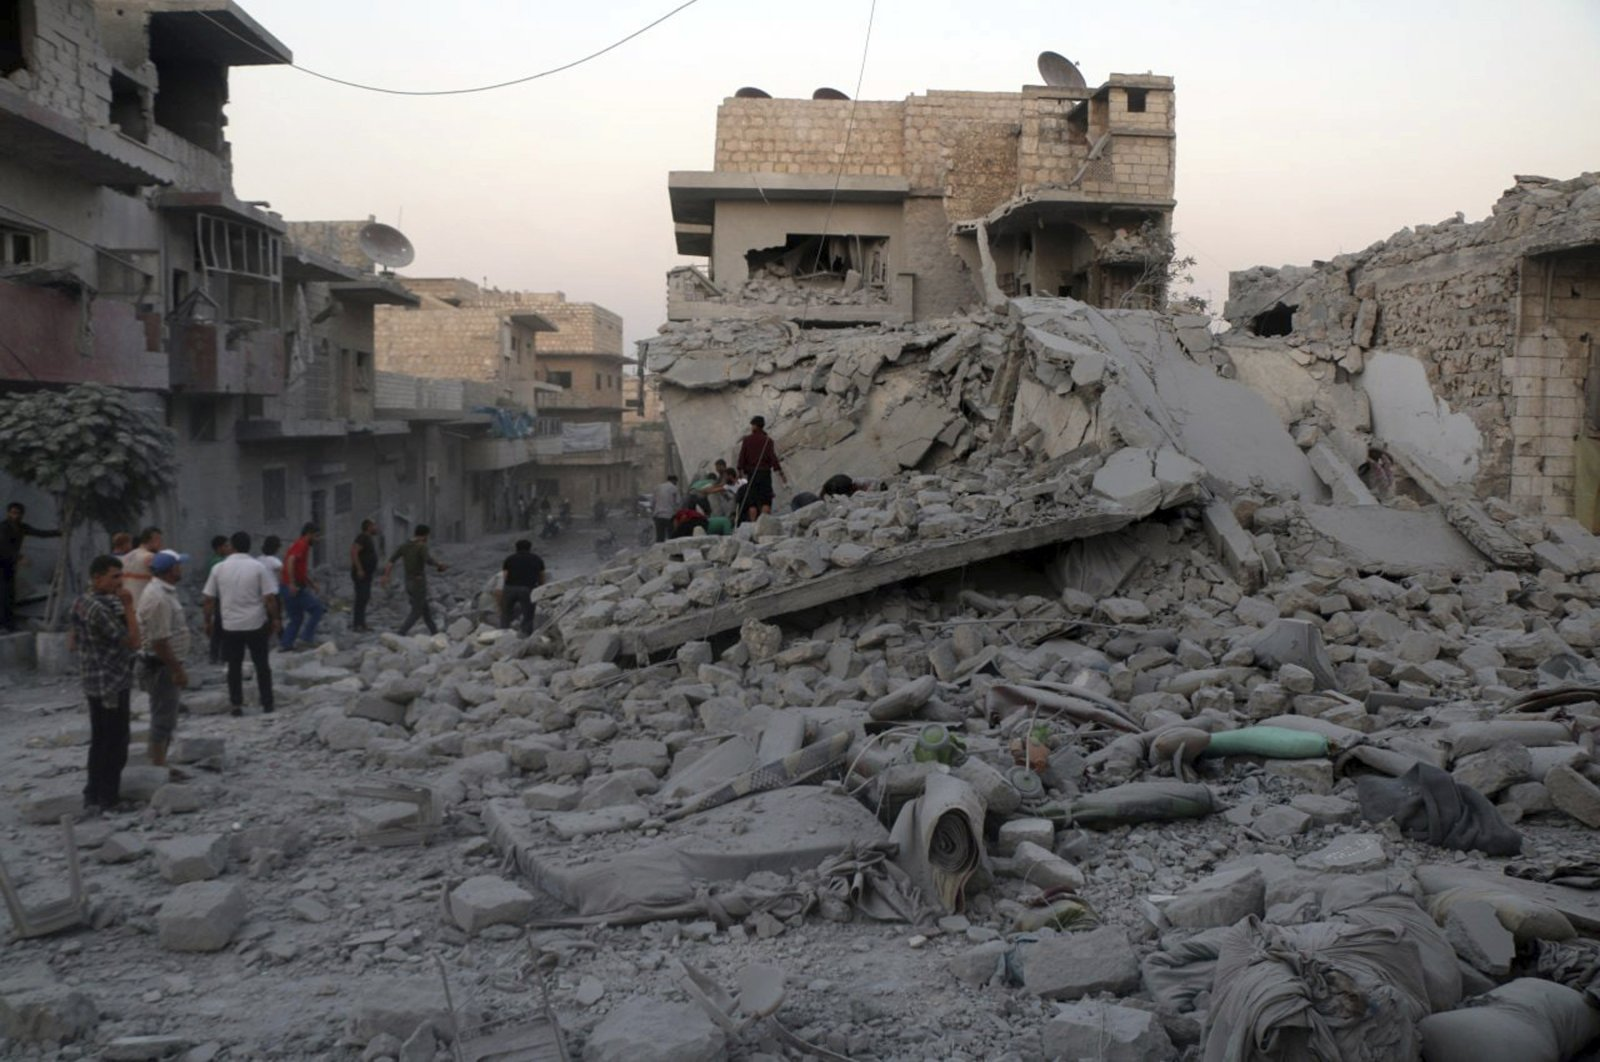 People search for victims under the rubble of destroyed buildings that were hit by regime airstrikes in the northern town of Maaret al-Numan, in Idlib province, Syria, Aug. 28, 2019. (AP Photo)